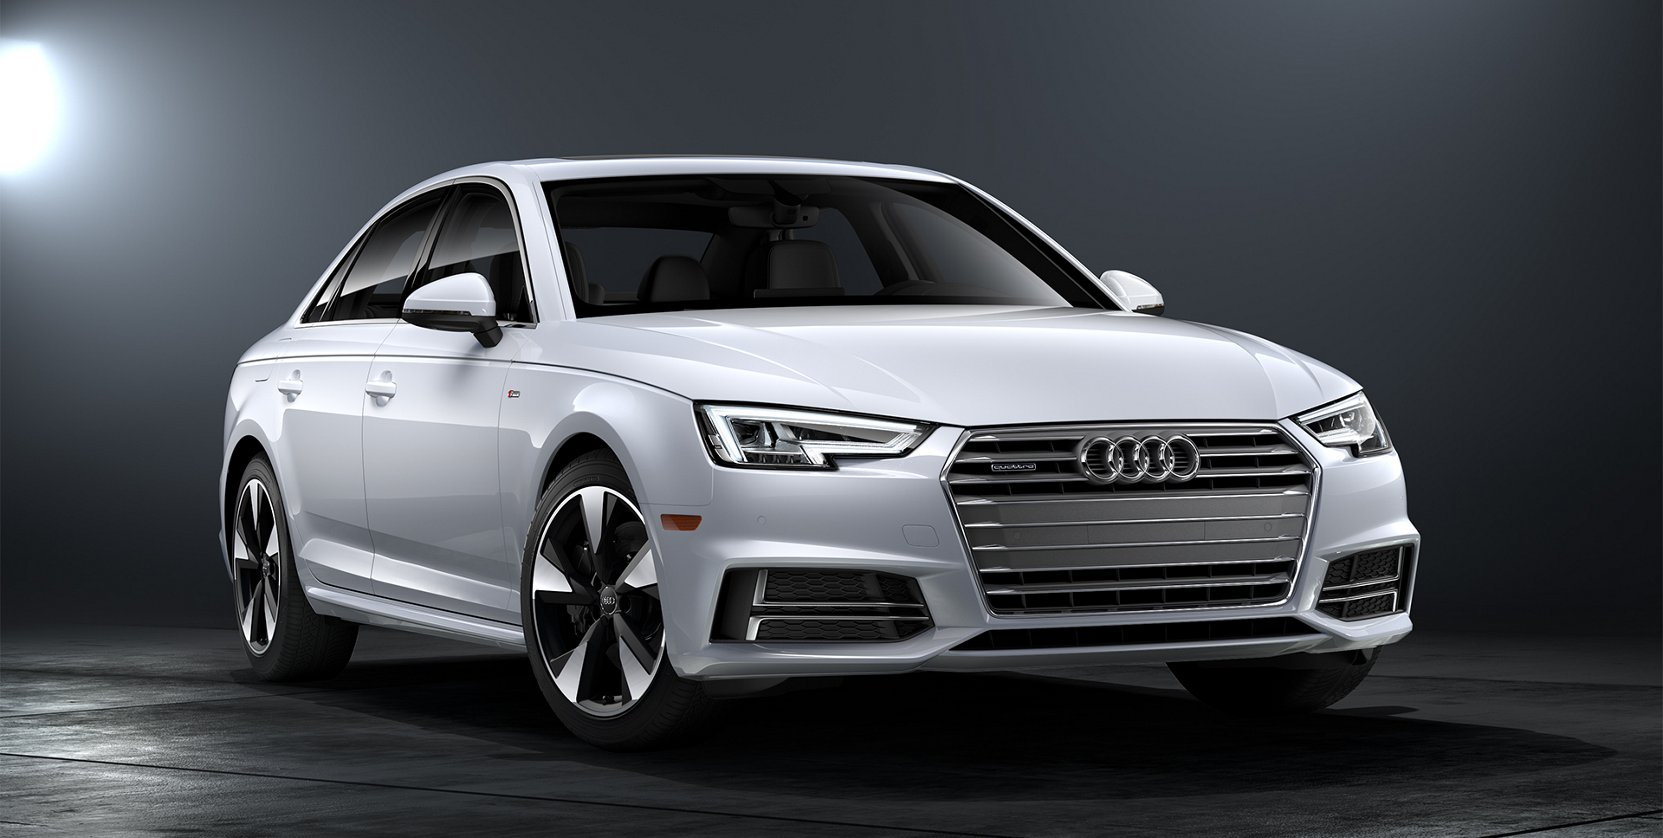 New Audi A At Paul Miller Audi In Parsippany NJ - Audi a4 lease deals nj